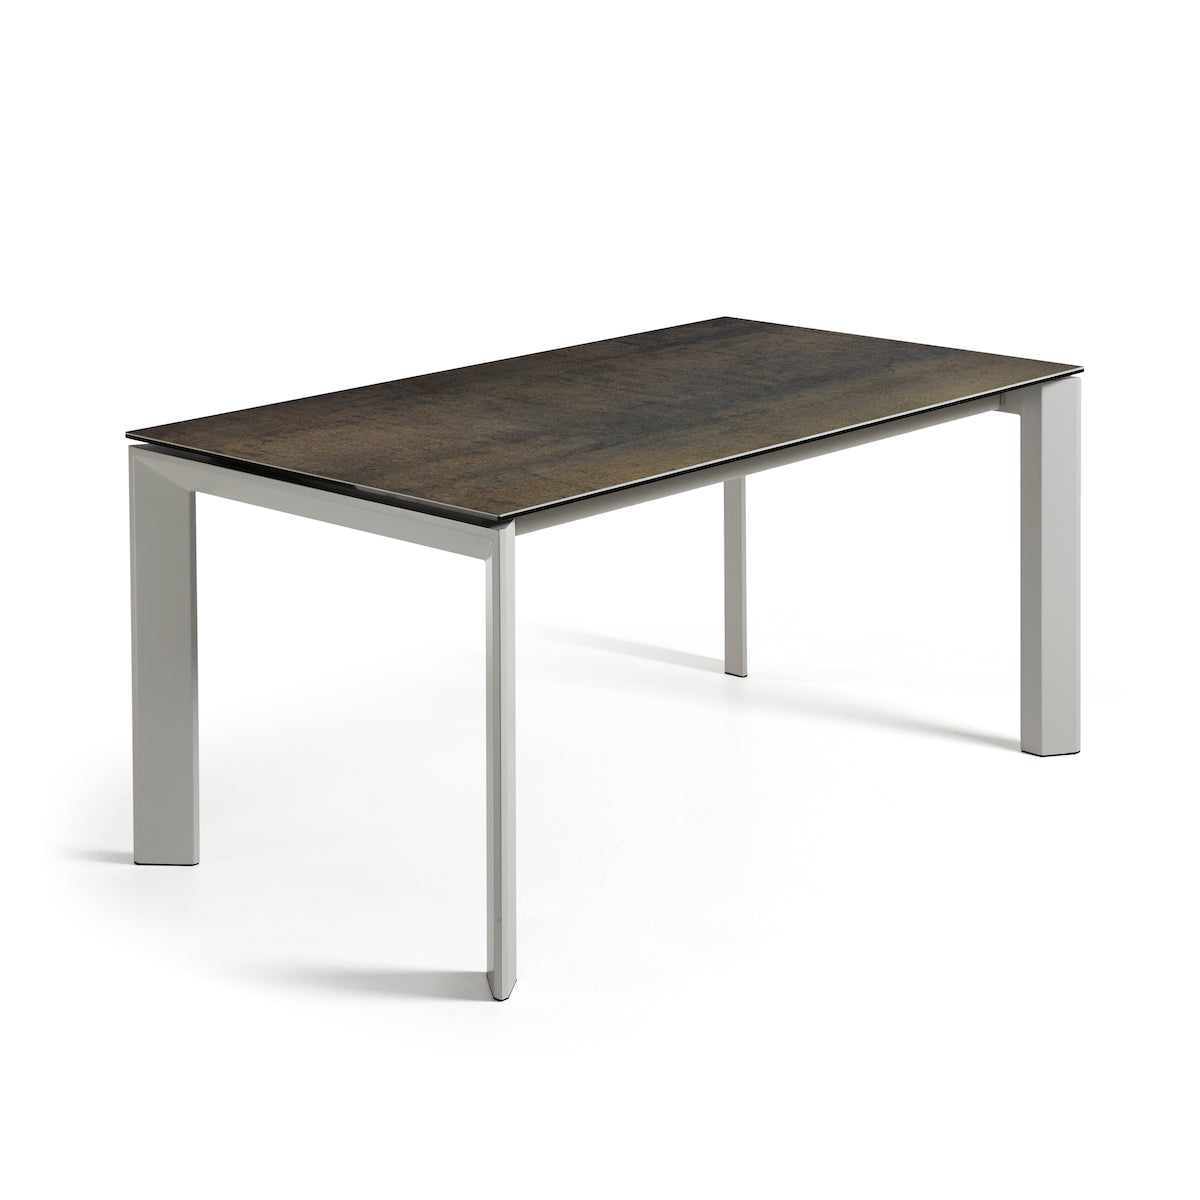 ATTA Table 160(220)x90 grey ceramic iron moss, Dining Table - Home-Buy Interiors